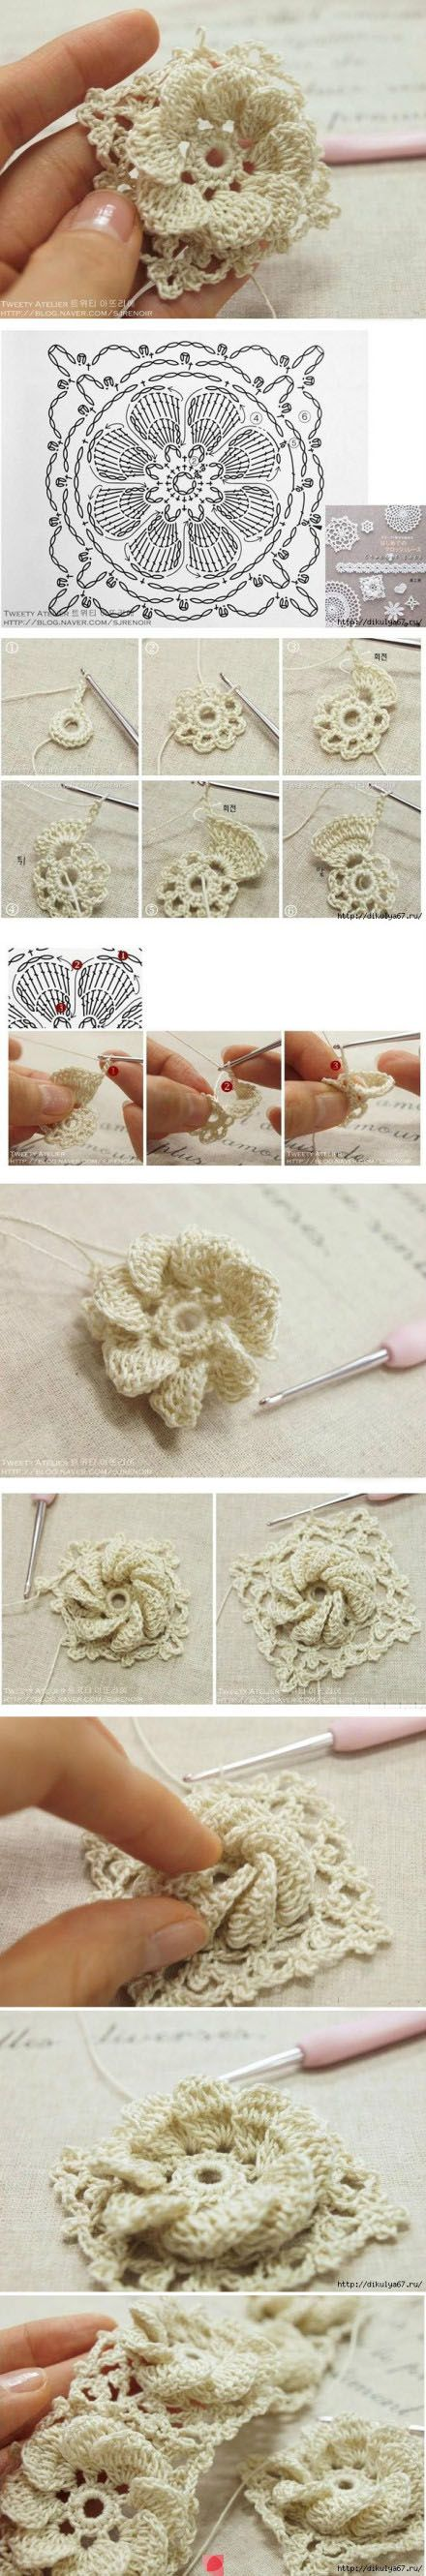 #crochet #square #flower